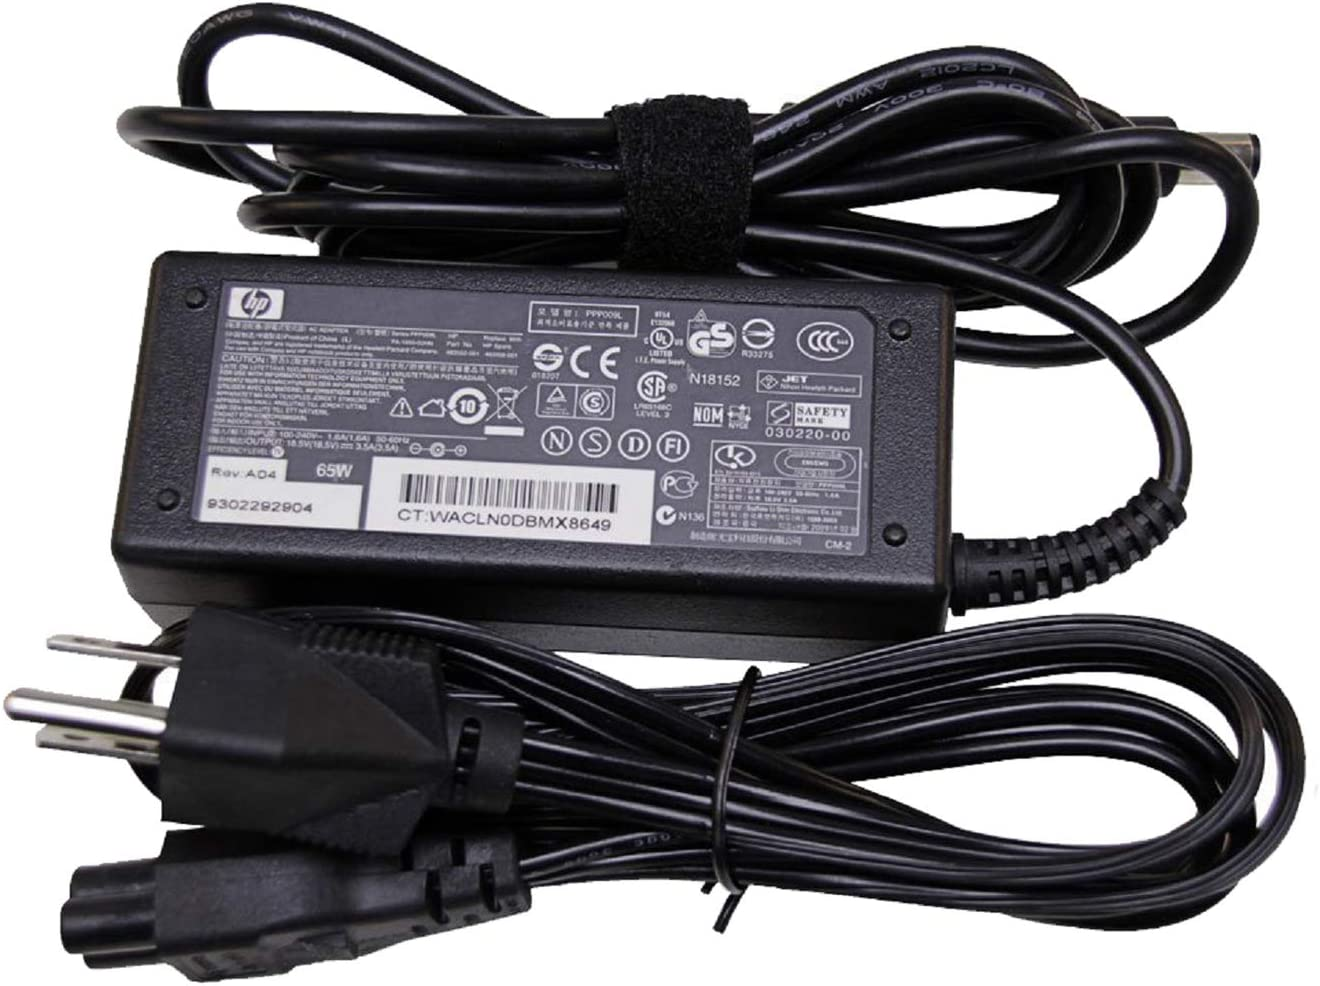 UpBright 65W AC Adapter Compatible with Original HP TM2T TouchSmart Series Regulatory Model: Series PPP009H, PPP009C, PPP009L-E HP Part No: 677774-002 608425-002 608425-001 or 609939-001 Power Supply